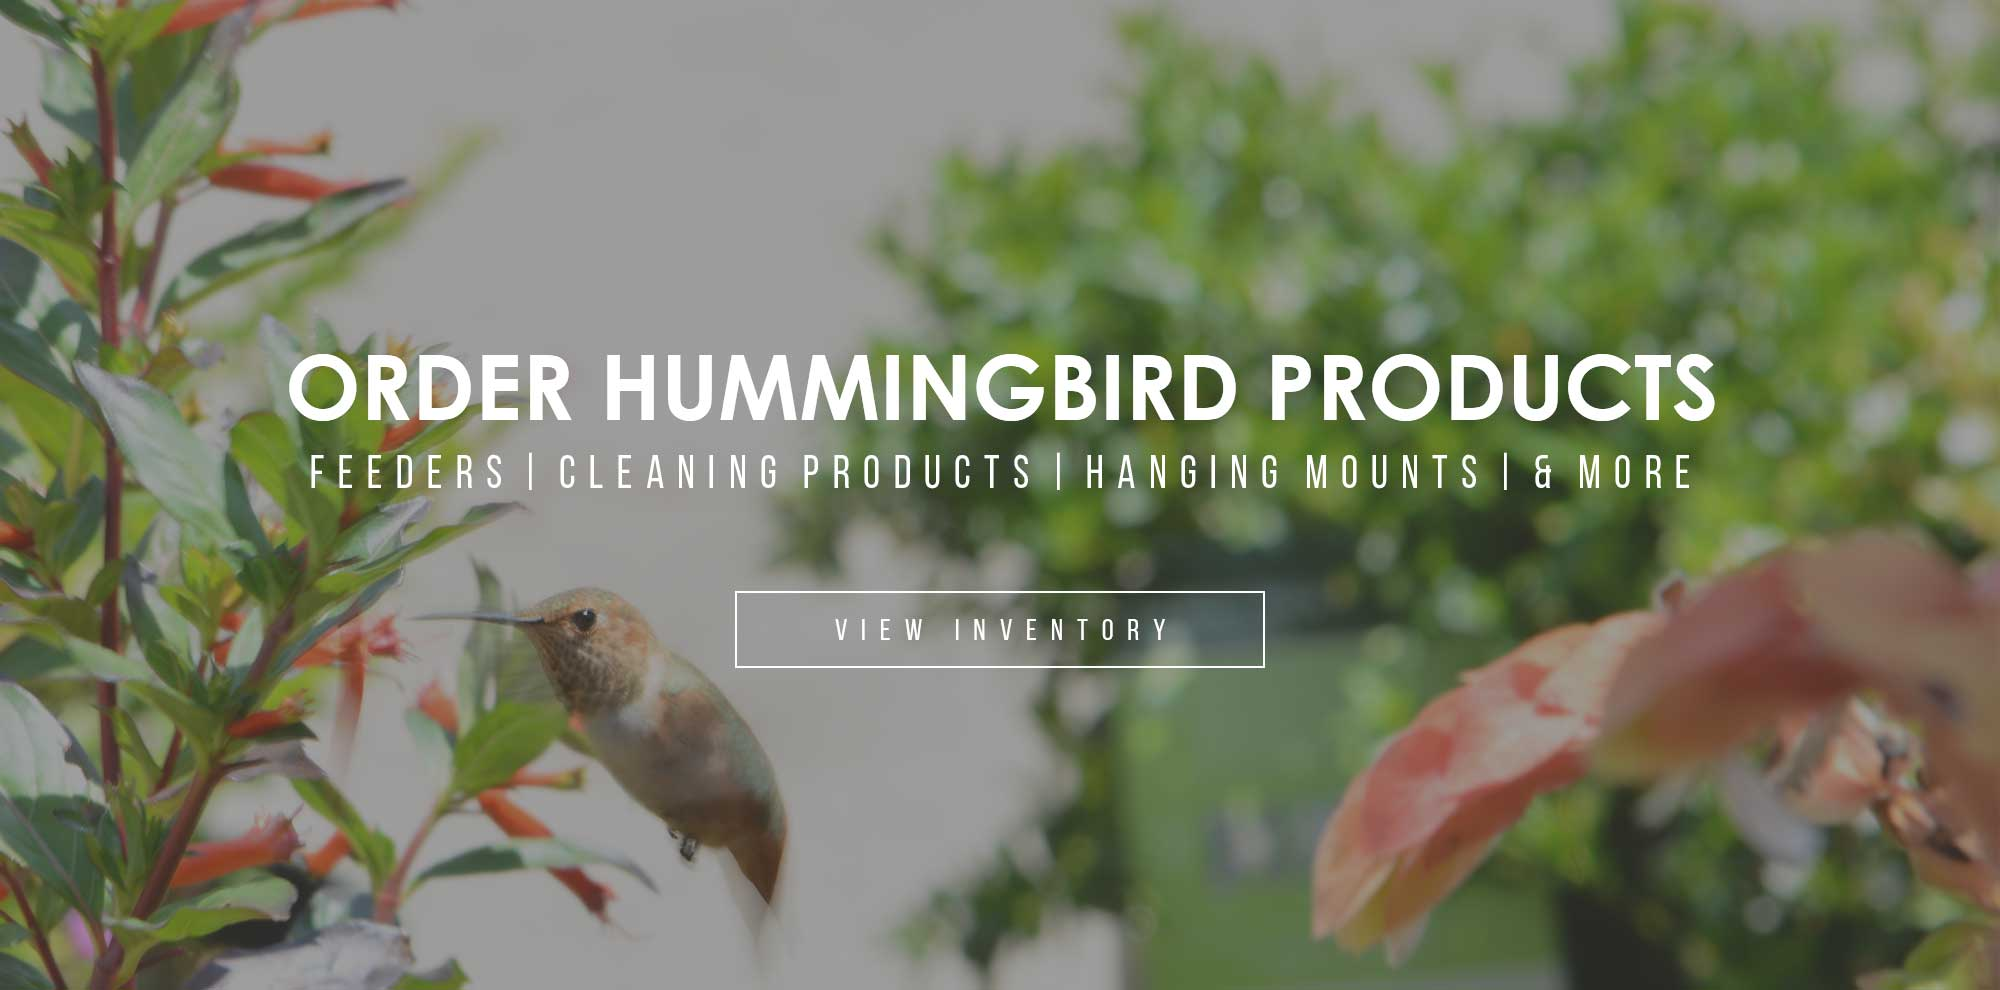 Hummingbird Products | Feeders, Cleaning Products, Hanging Mounts